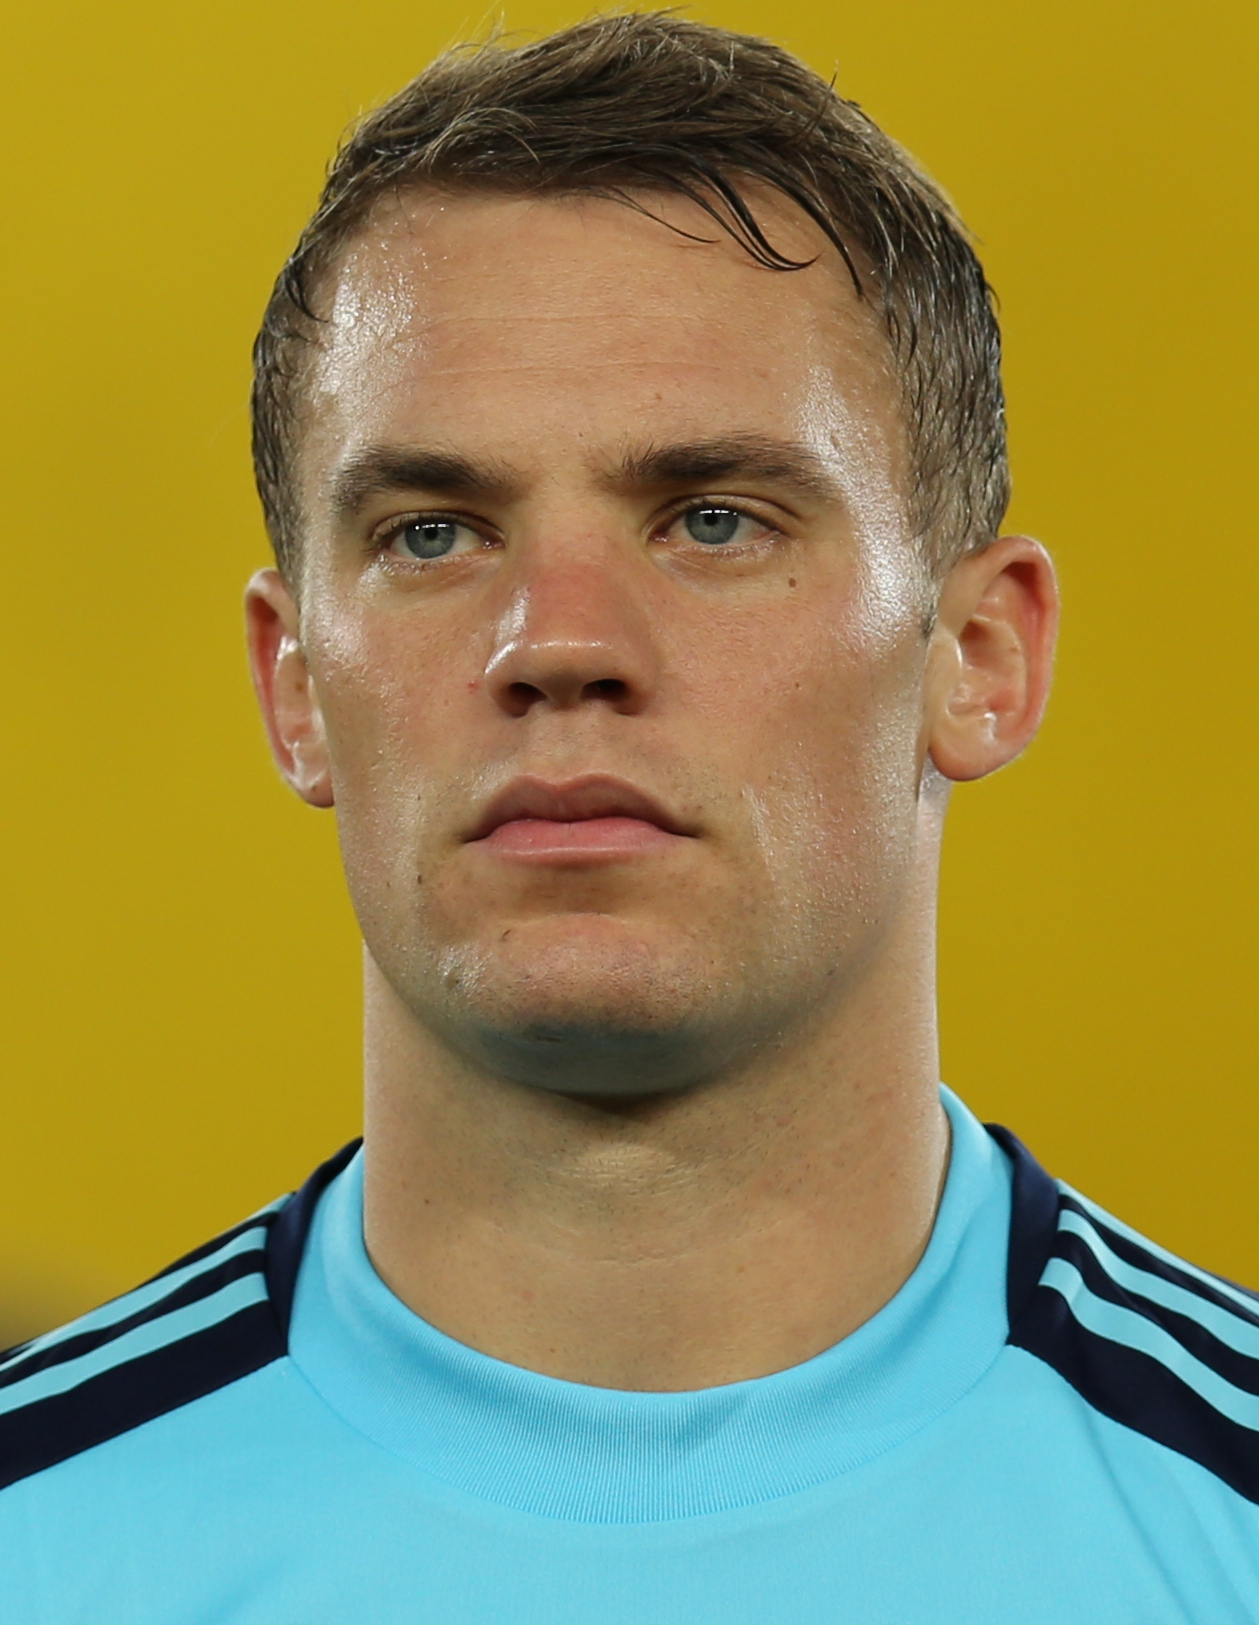 Depiction of Manuel Neuer